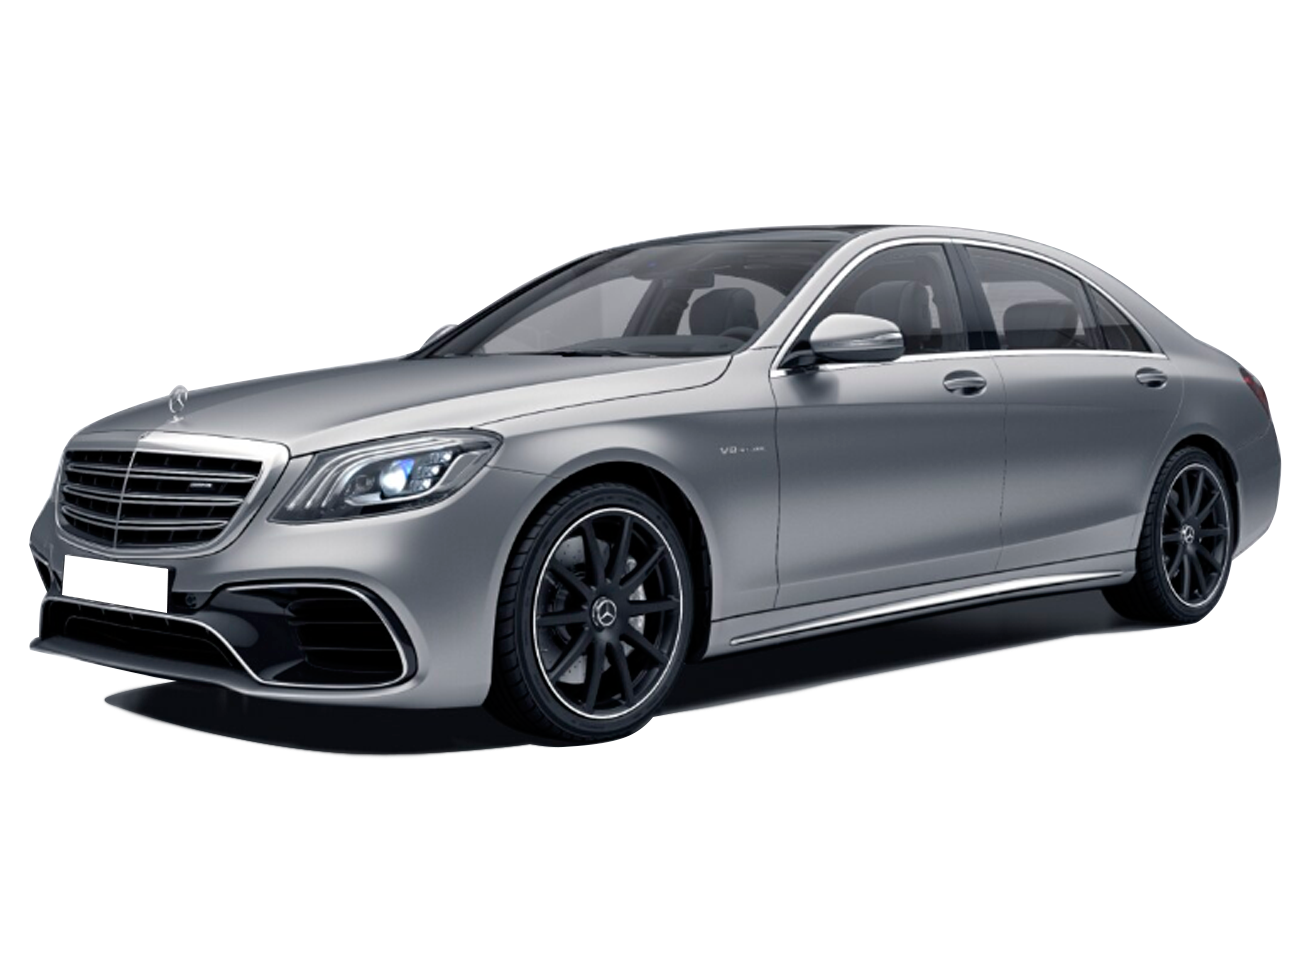 MERCEDES-BENZ - S 63 AMG - 4.0 V8 TURBO GASOLINA L 4MATIC SPEEDSHIFT